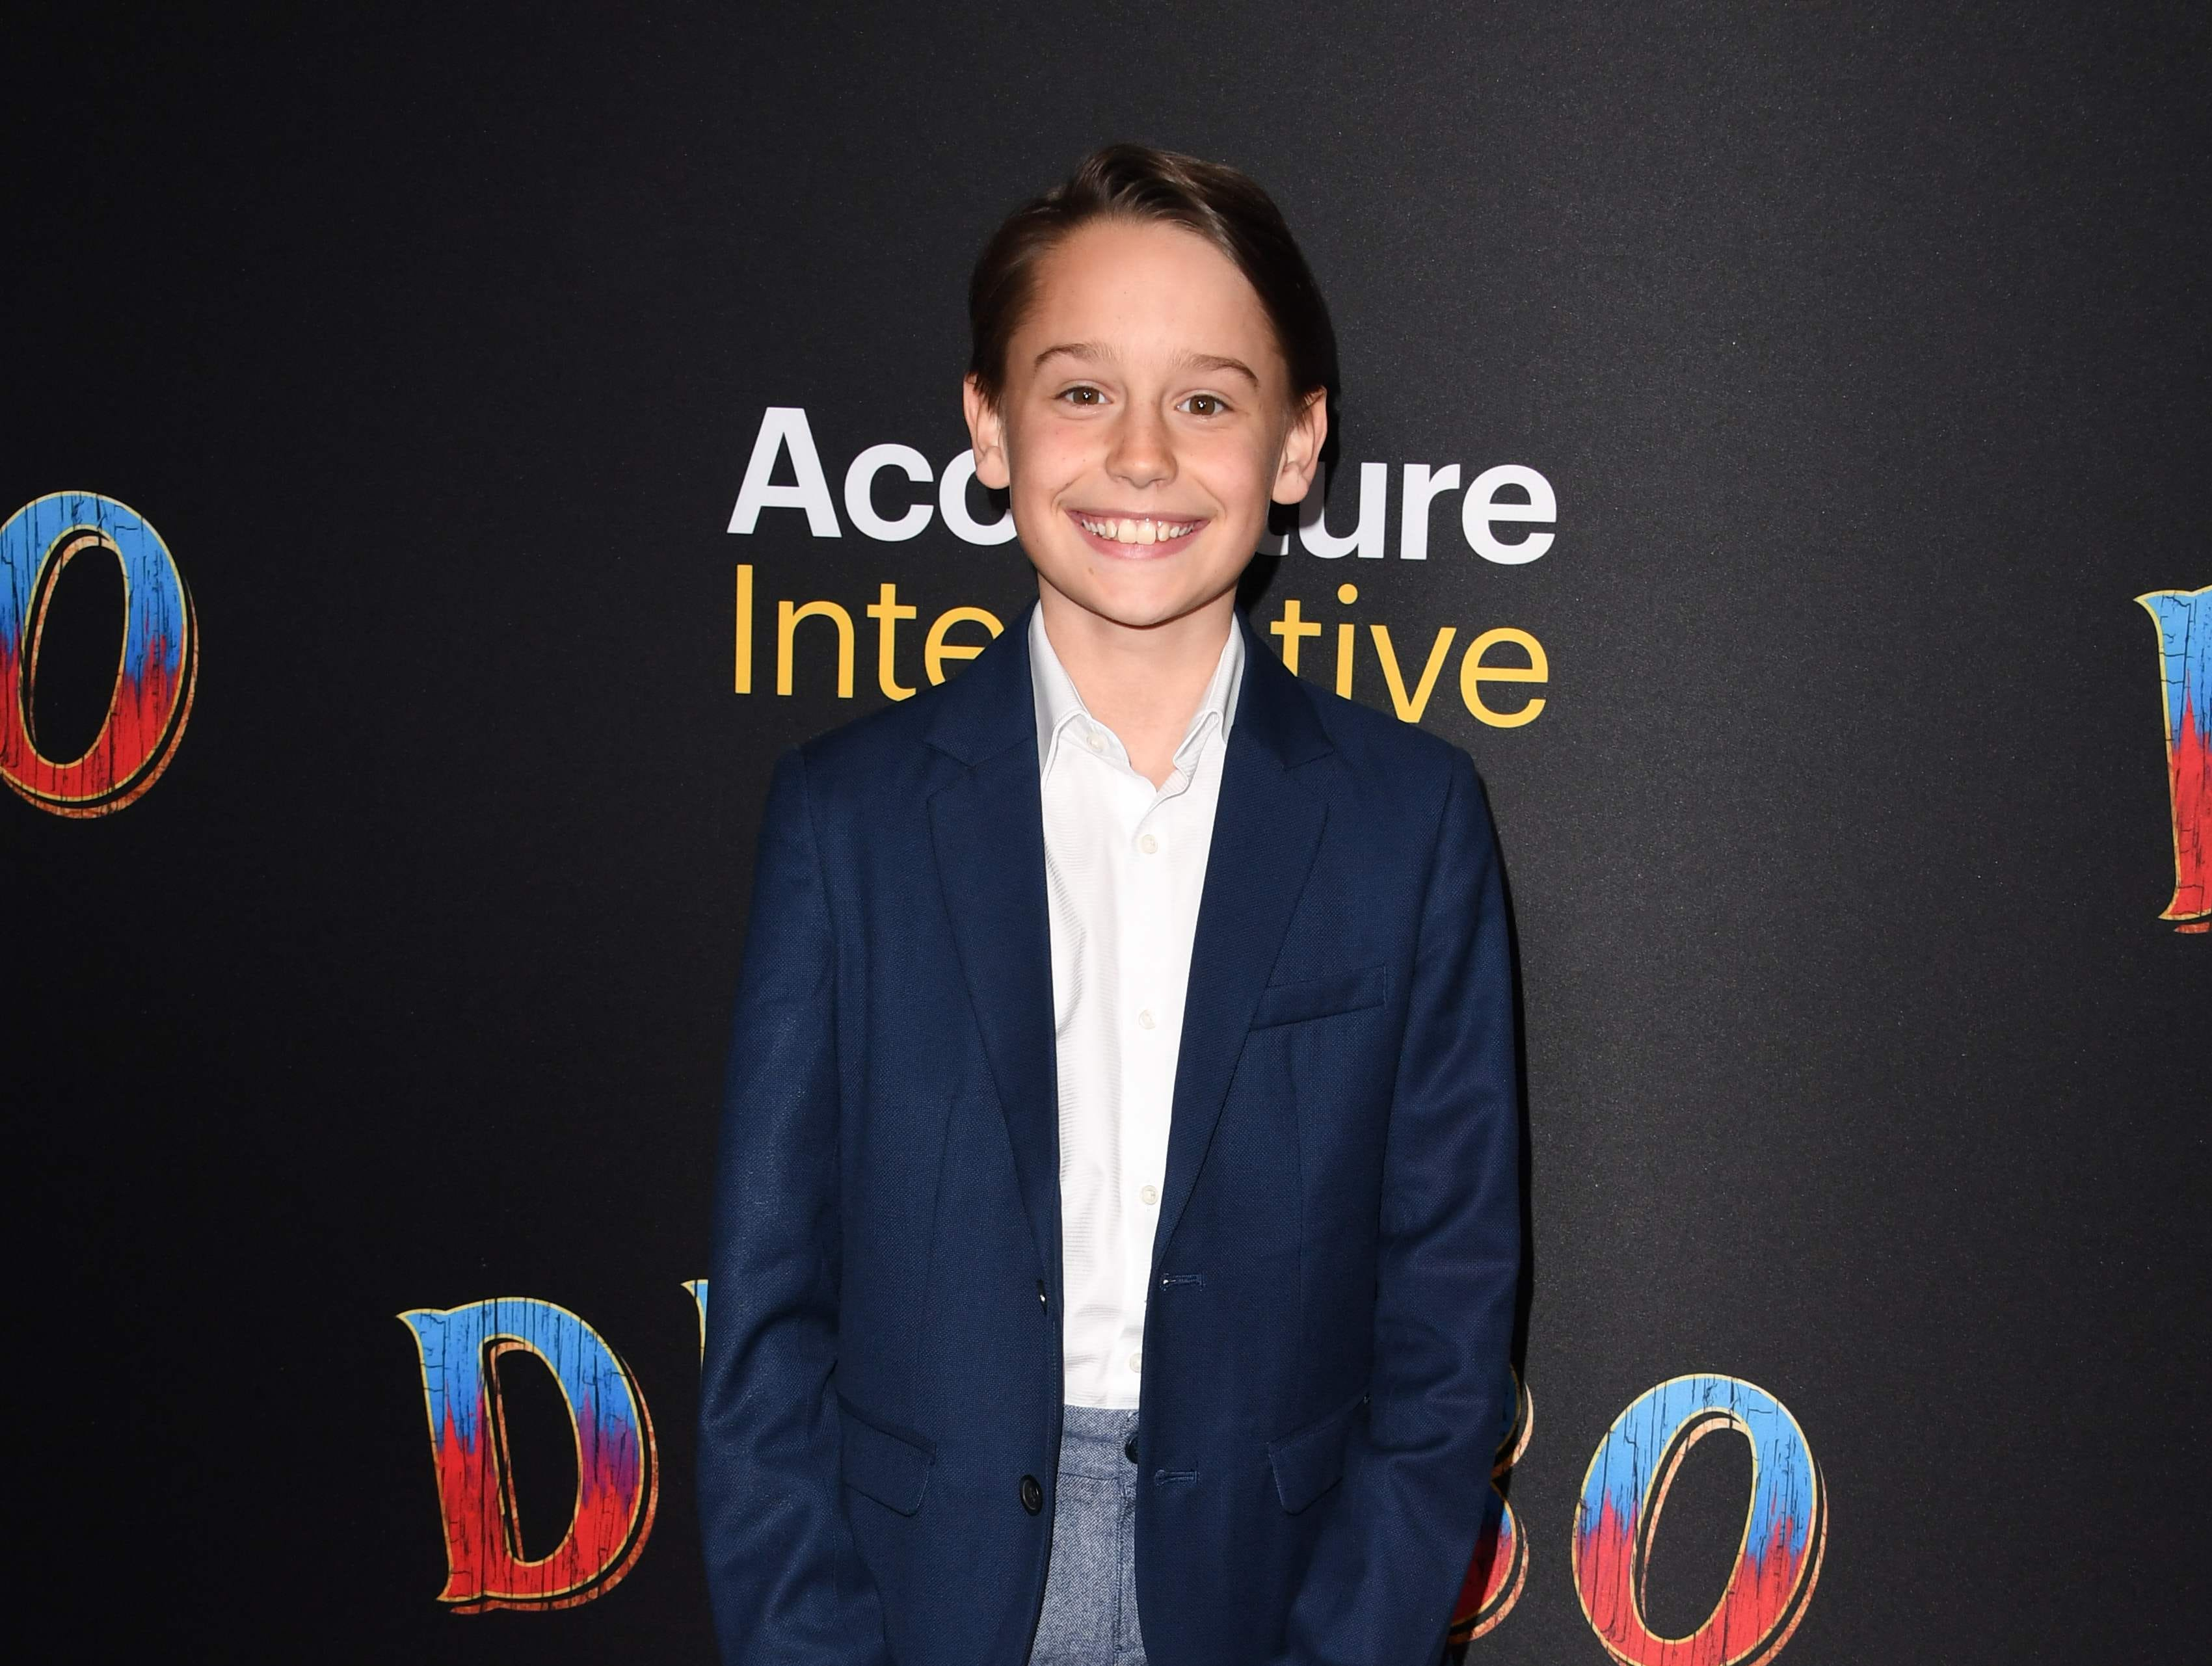 """US actor Finley Hobbins arrives for the world premiere of Disney's """"Dumbo"""" at El Capitan theatre on March 11, 2019 in Hollywood. (Photo by Robyn Beck / AFP)ROBYN BECK/AFP/Getty Images ORG XMIT: Premiere ORIG FILE ID: AFP_1EI2I6"""